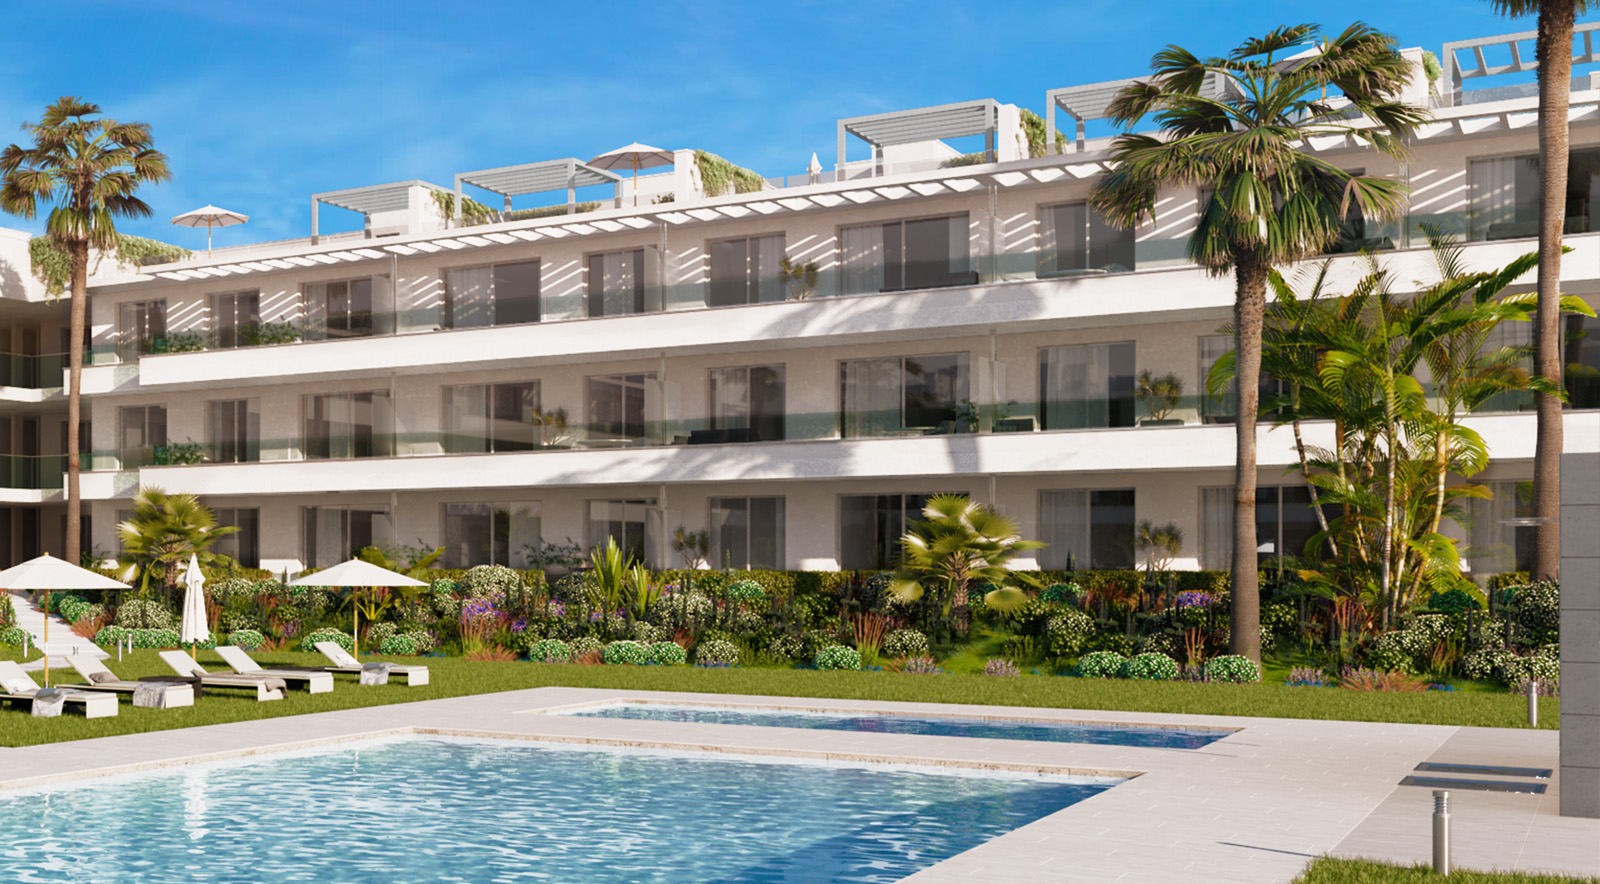 Apartment in Estepona MA7589994 5 Thumbnail